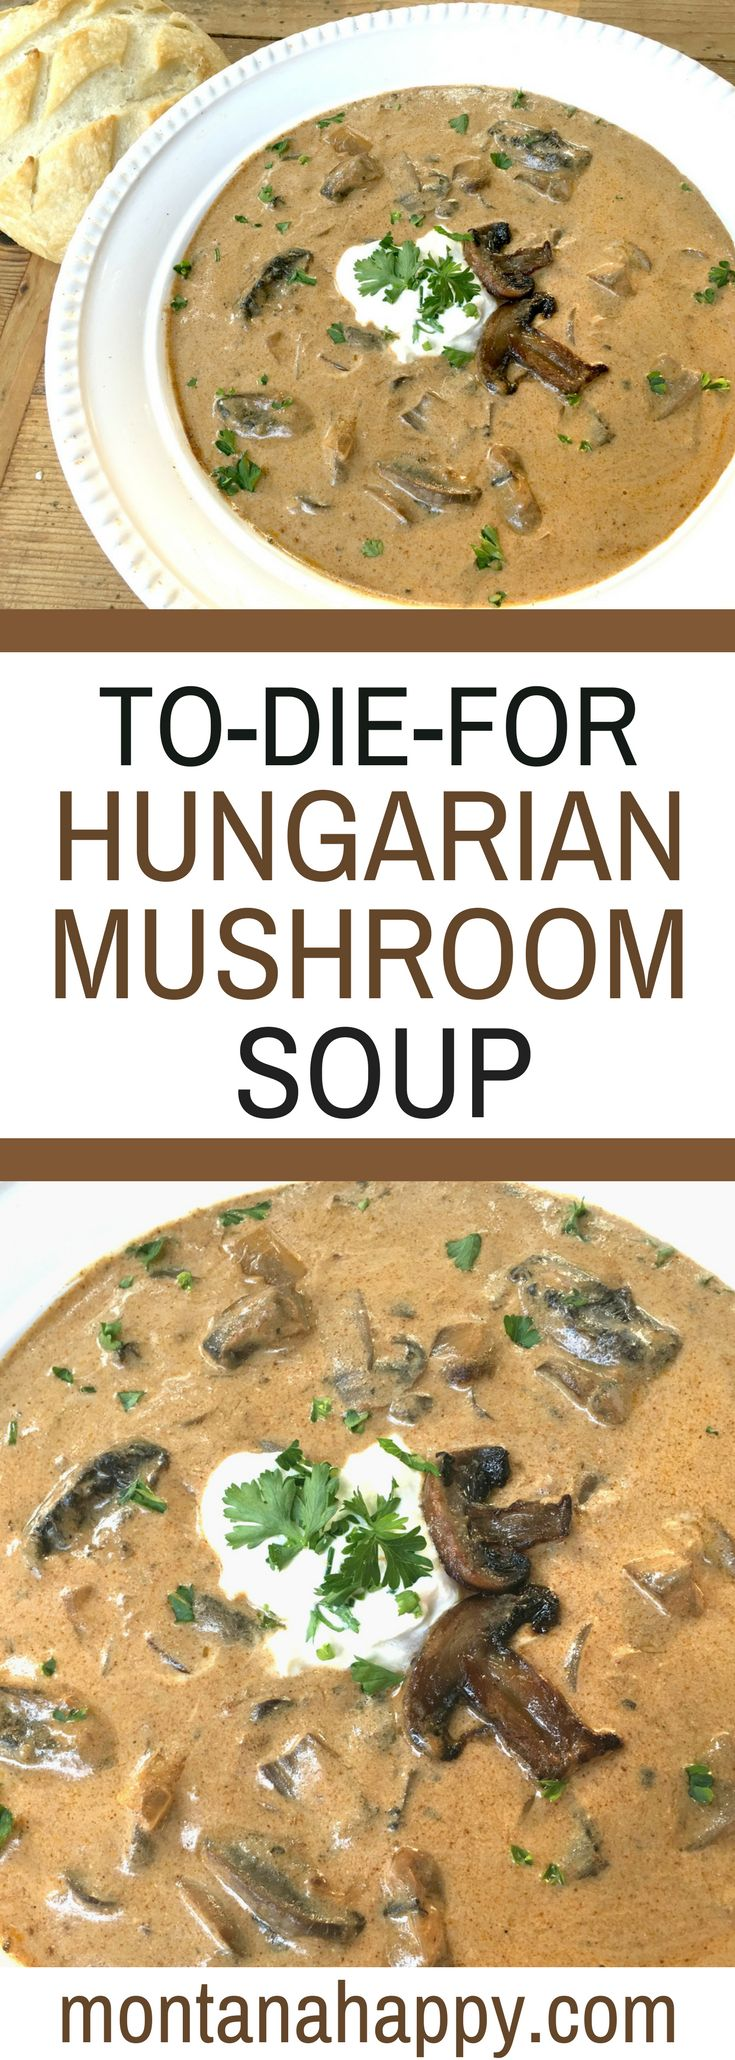 To-Die-For Rustic Hungarian Mushroom Soup - You will LOVE this soup. Look at the comments. #soup #mushroomsoup #souprecipe #souprecipes #mushroomsouprecipe #recipe